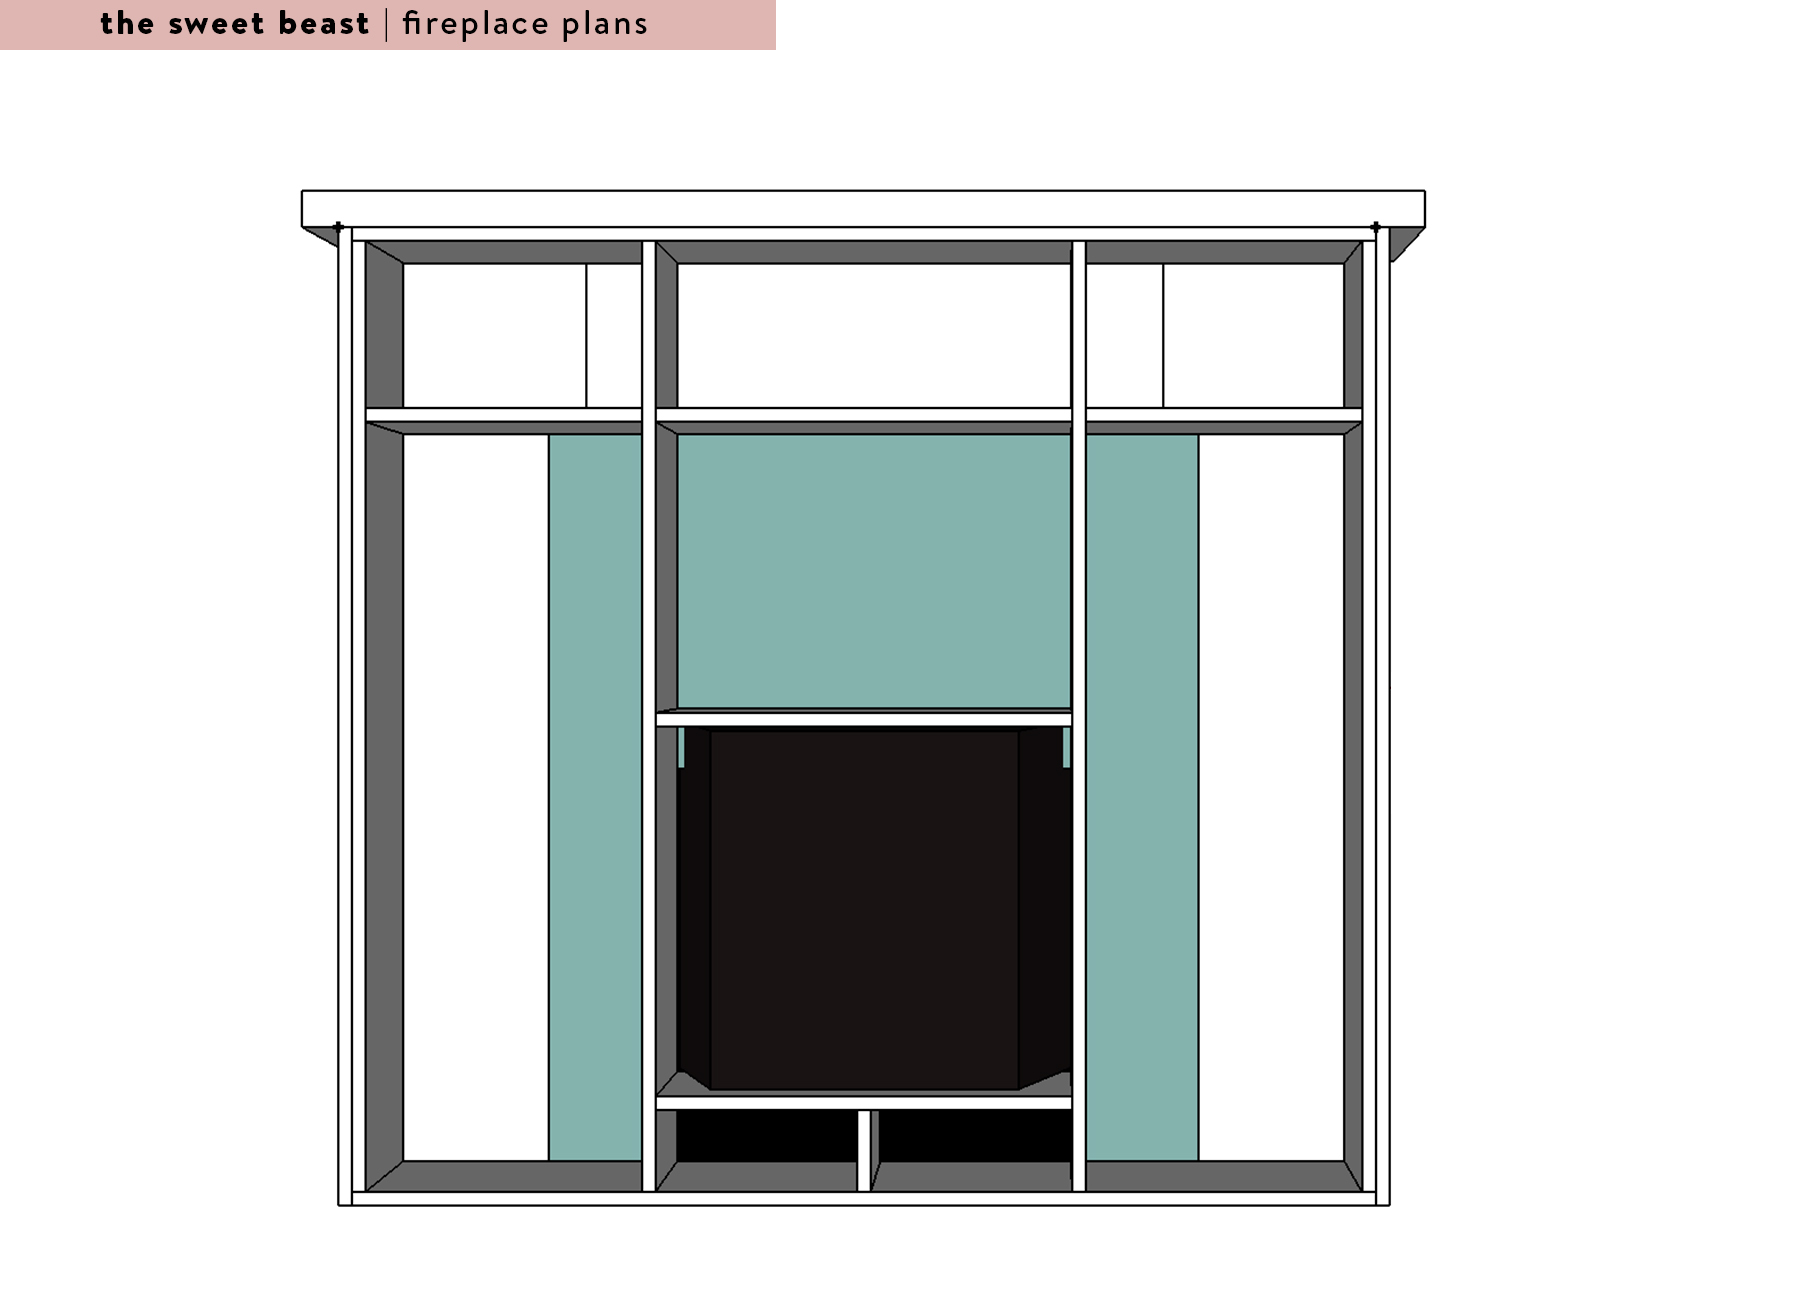 Sketchup Fireplace Plans Master Bedroom Fireplace Framing View